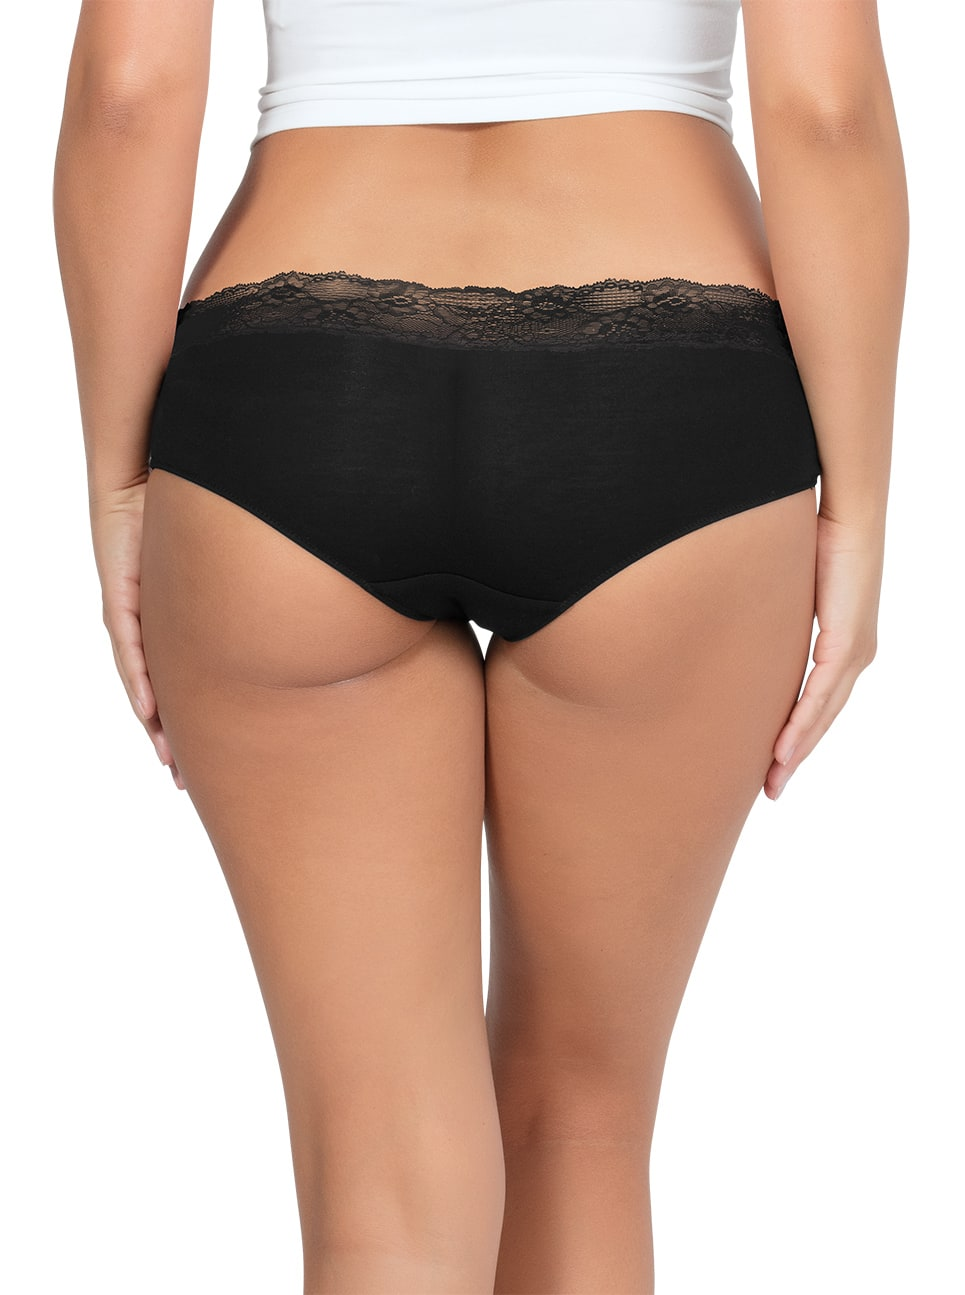 PARFAIT ParfaitPanty SoEssential HipsterPP503 Black Back - Panty So Essential Hipster - Black - PP503